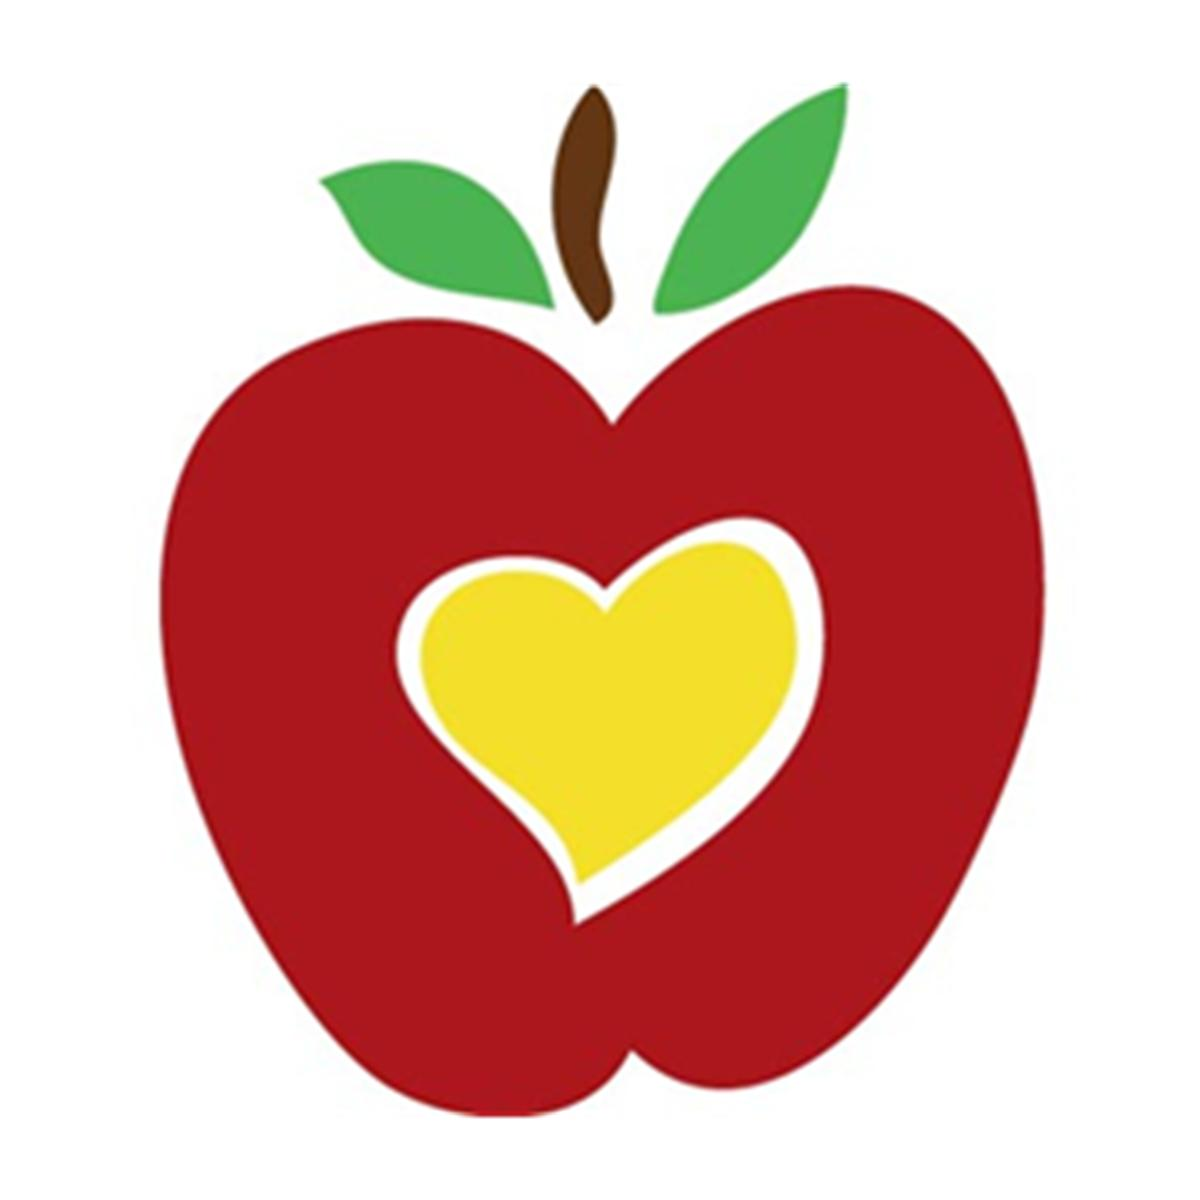 Apple With Heart Clipart.